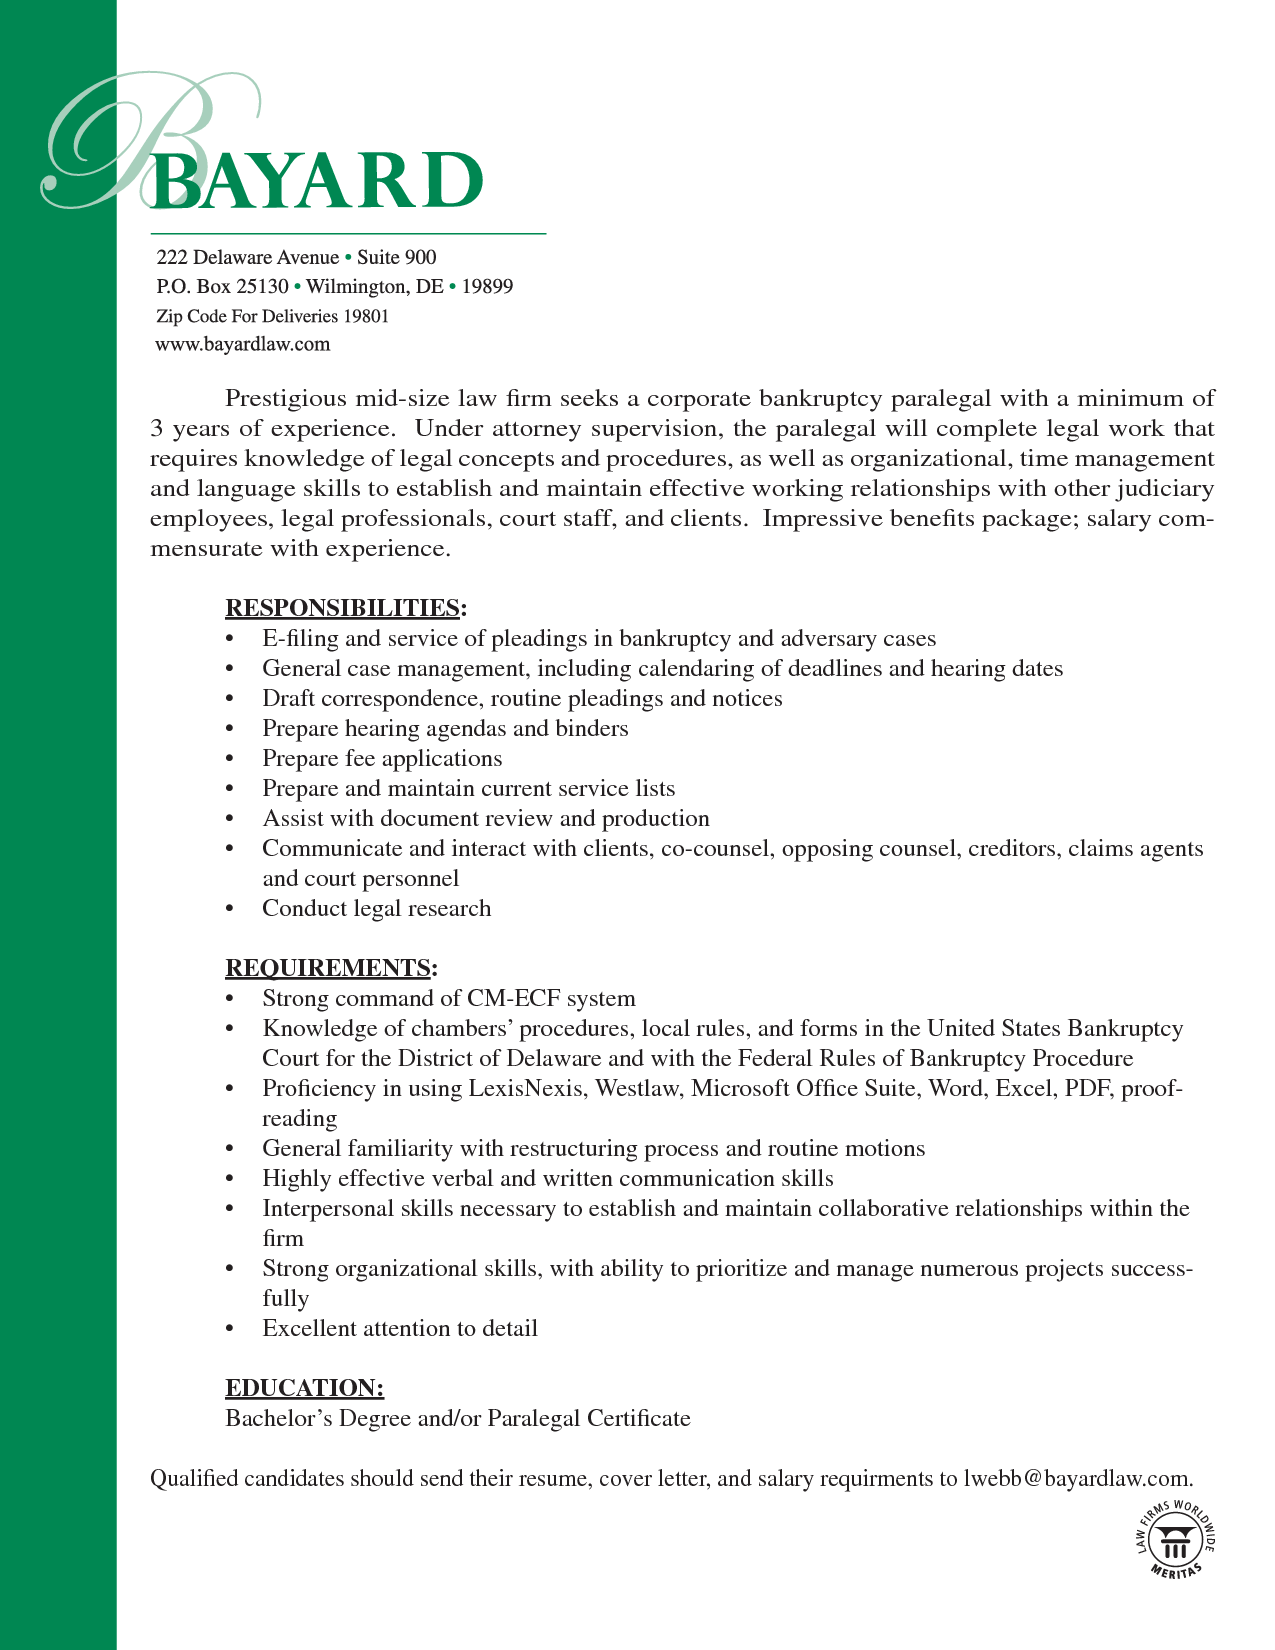 resume cover letter for legal assistant position resume and cover letter chronological emphasize - Resume Letter Or Legal Size